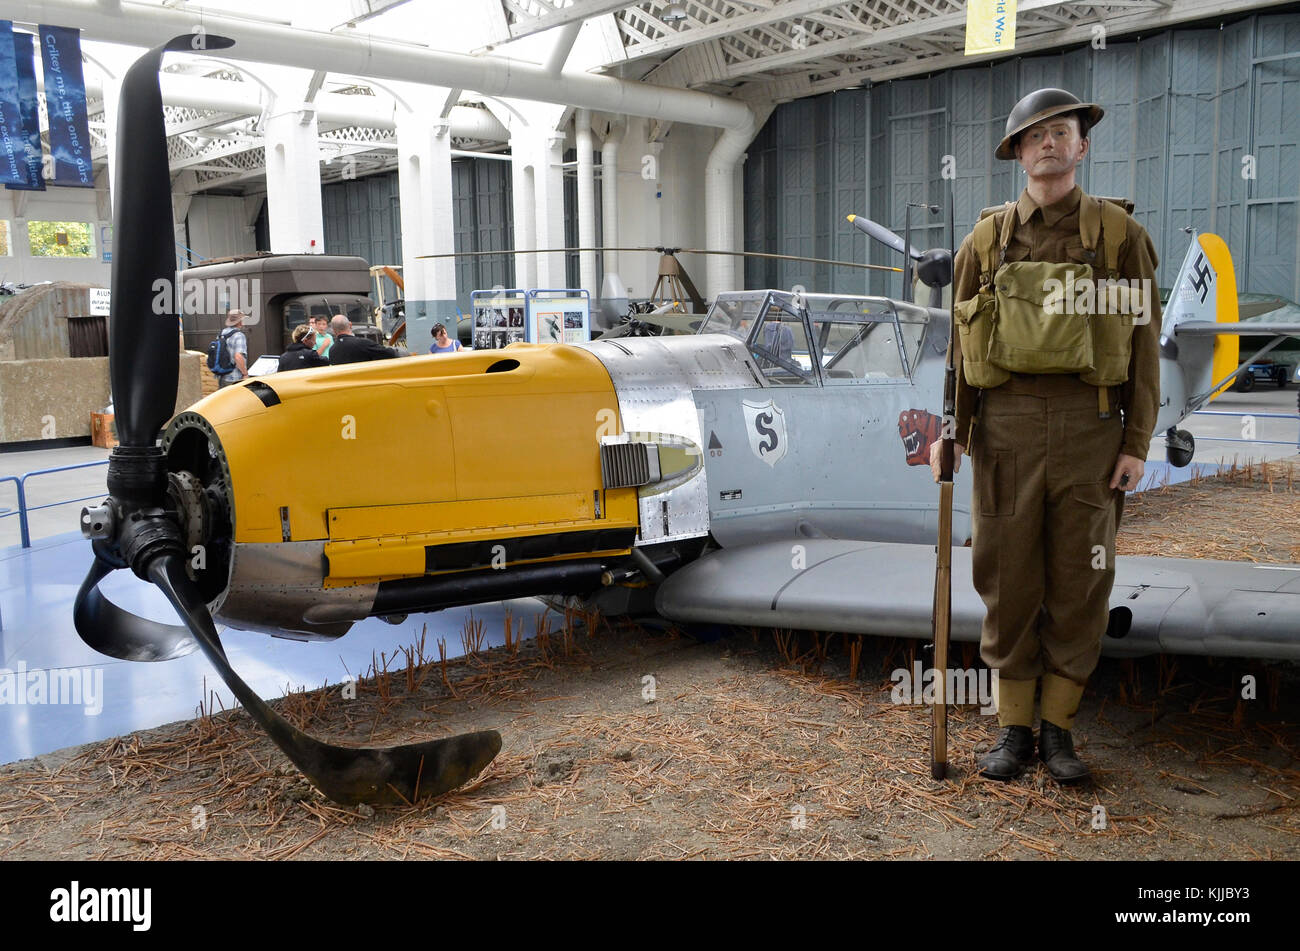 Messerschmitt Bf109E, Duxford IWM, UK, with British sentry recreating a Battle of Britain scene. This Bf109E was - Stock Image